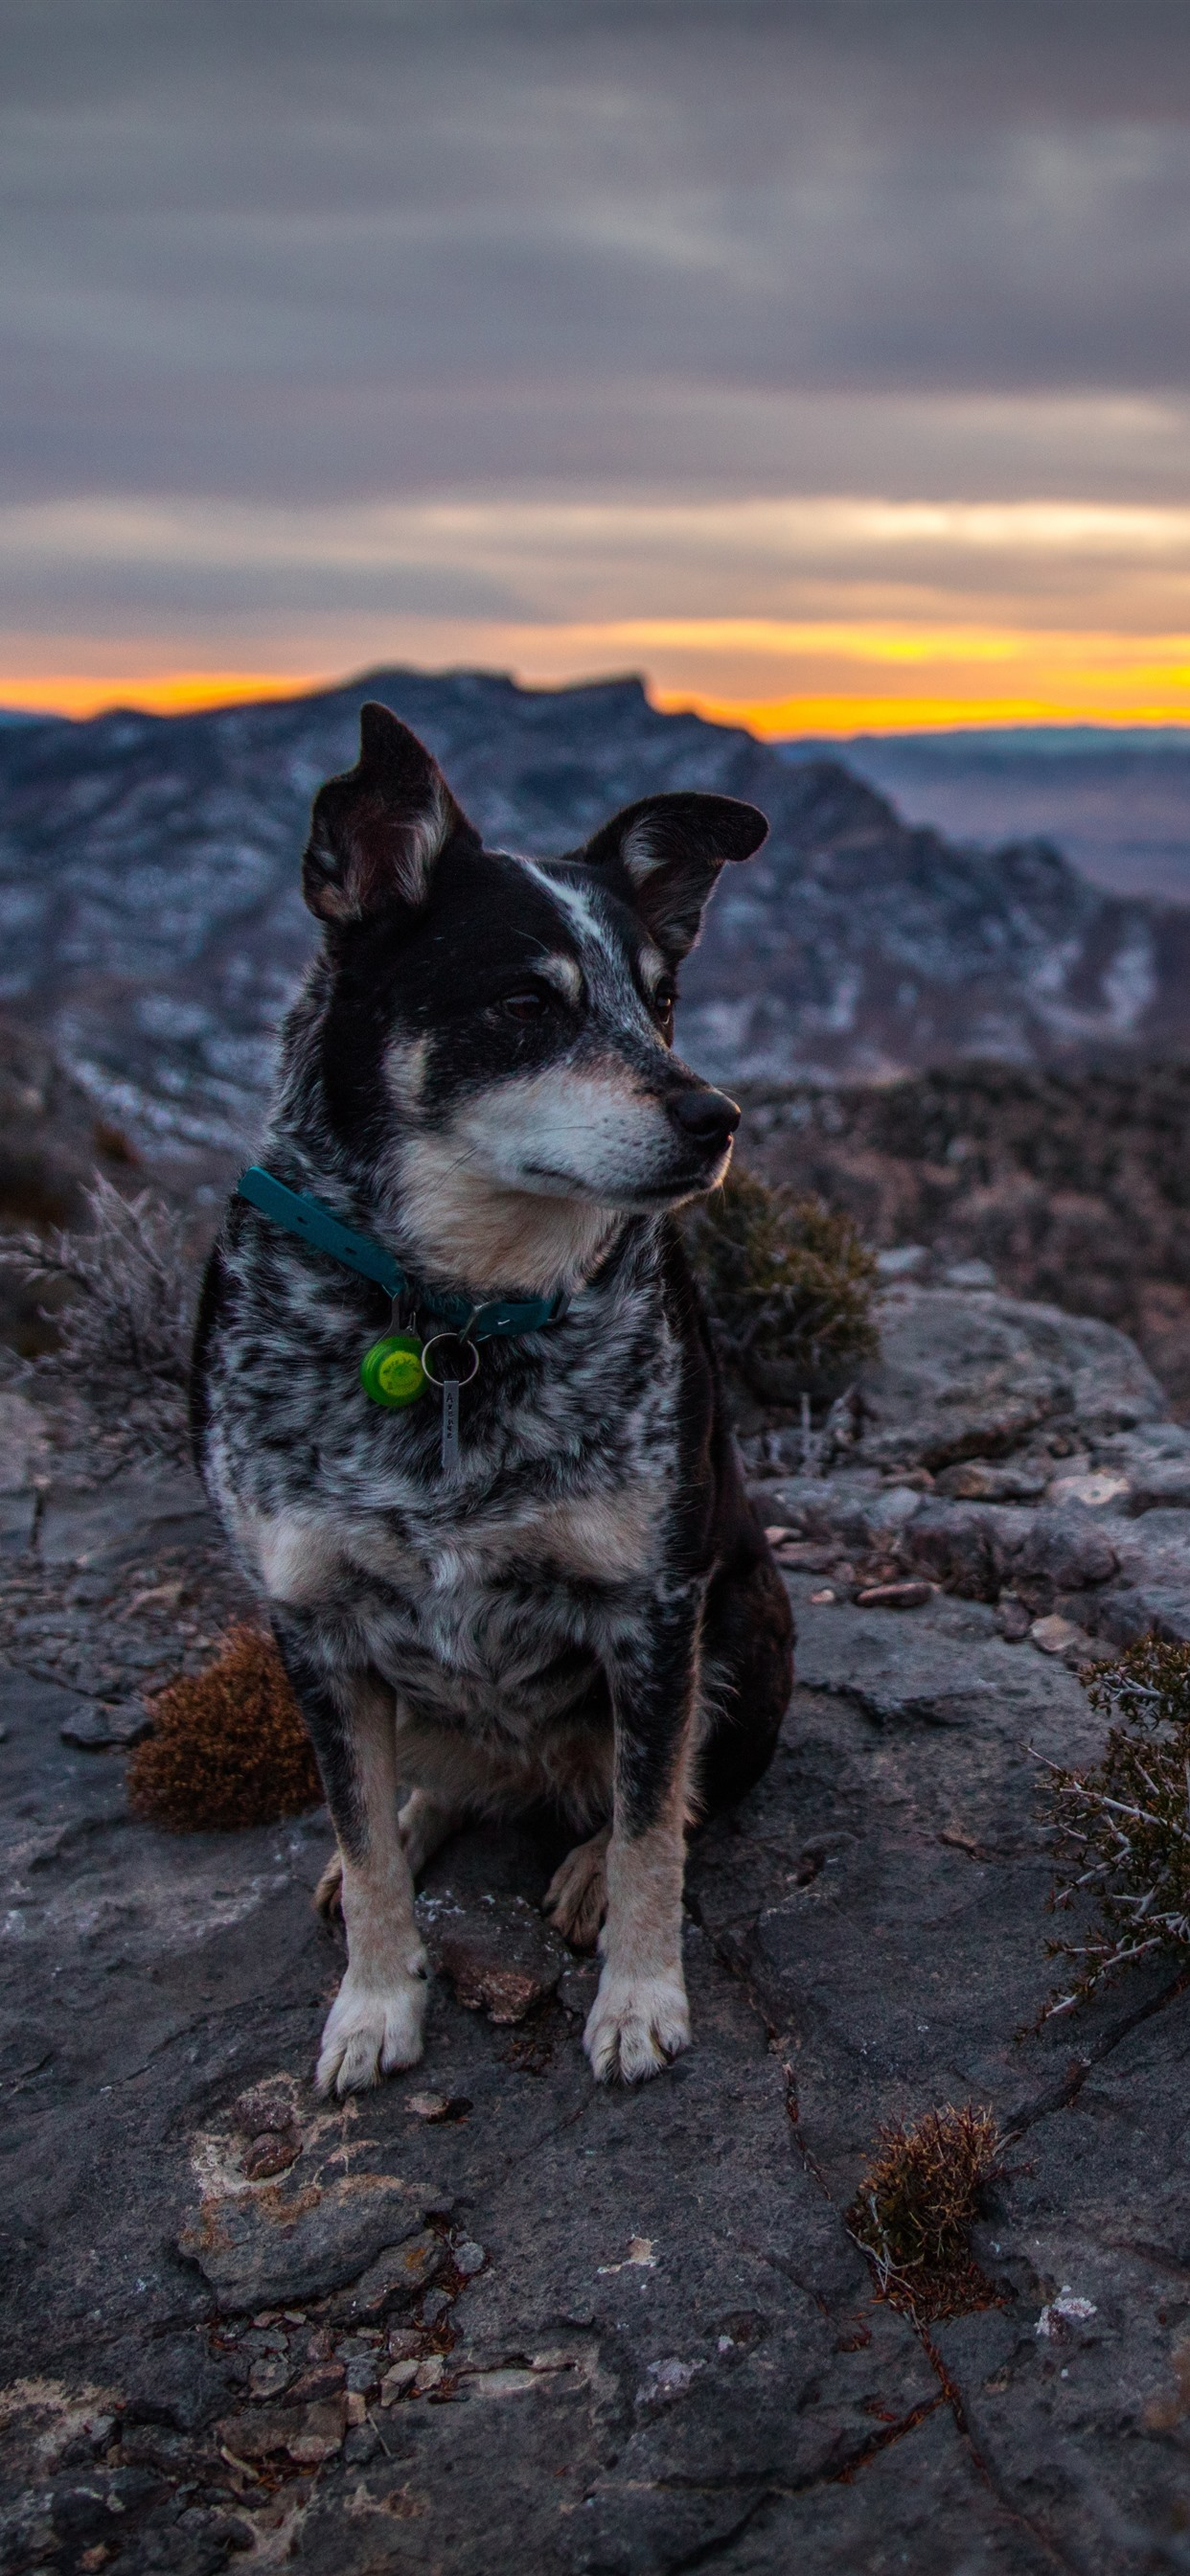 Dog Sit On Ground Mountains Sunset 1242x2688 Iphone Xs Max